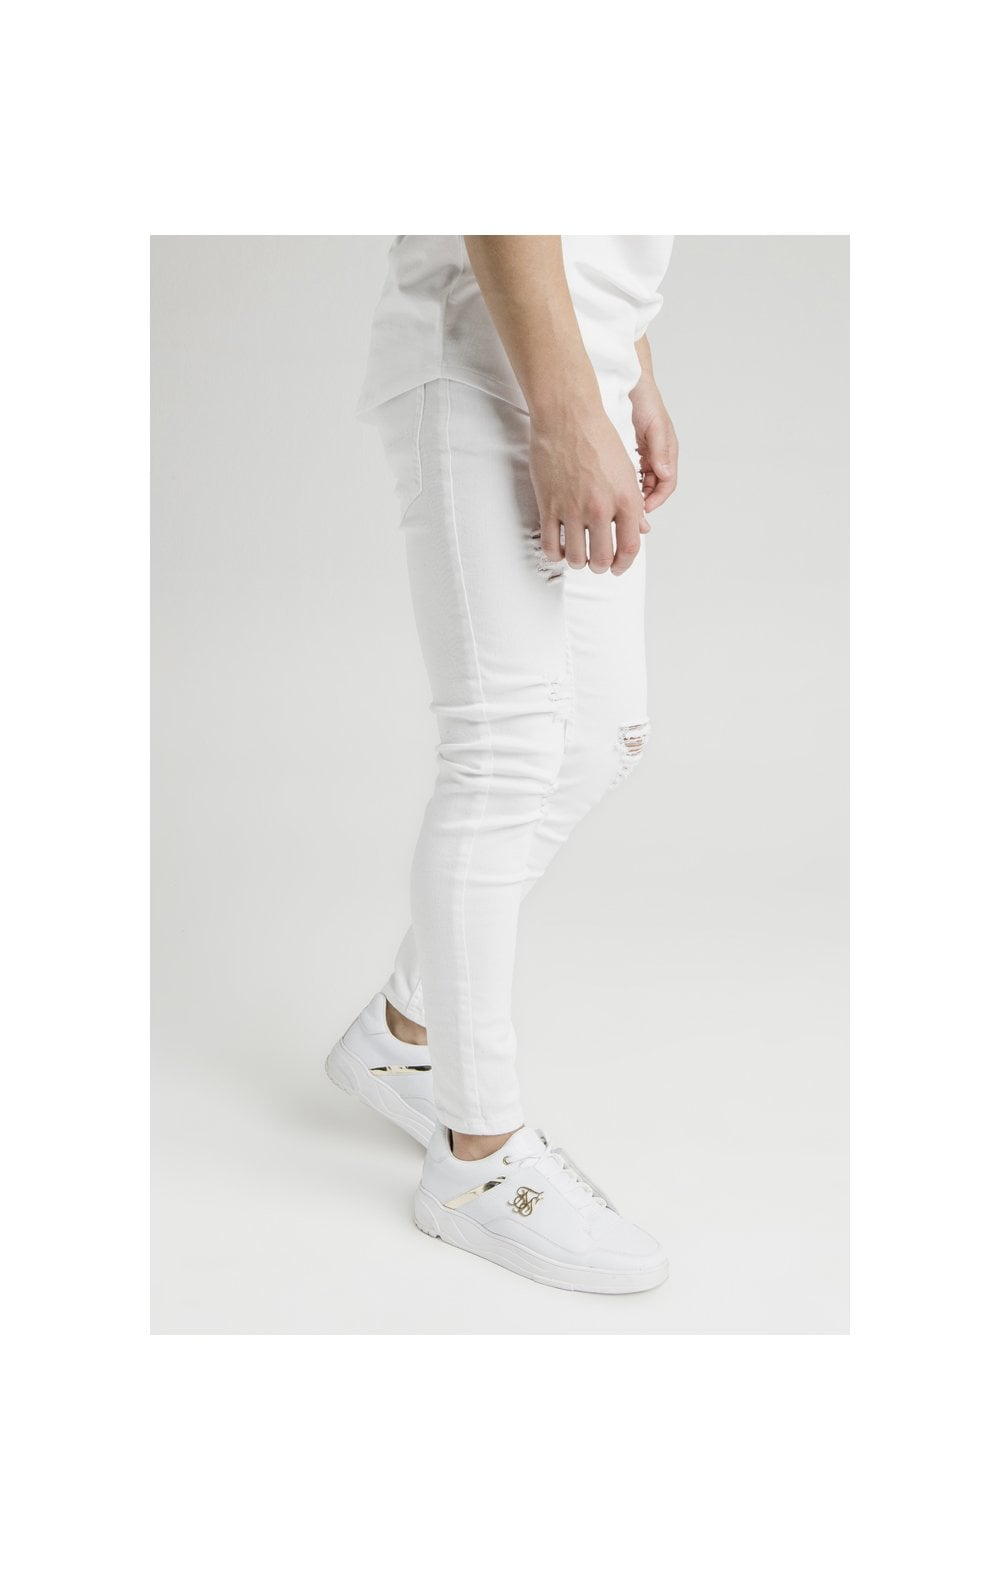 Illusive London Distressed Skinny Denims - White (1)